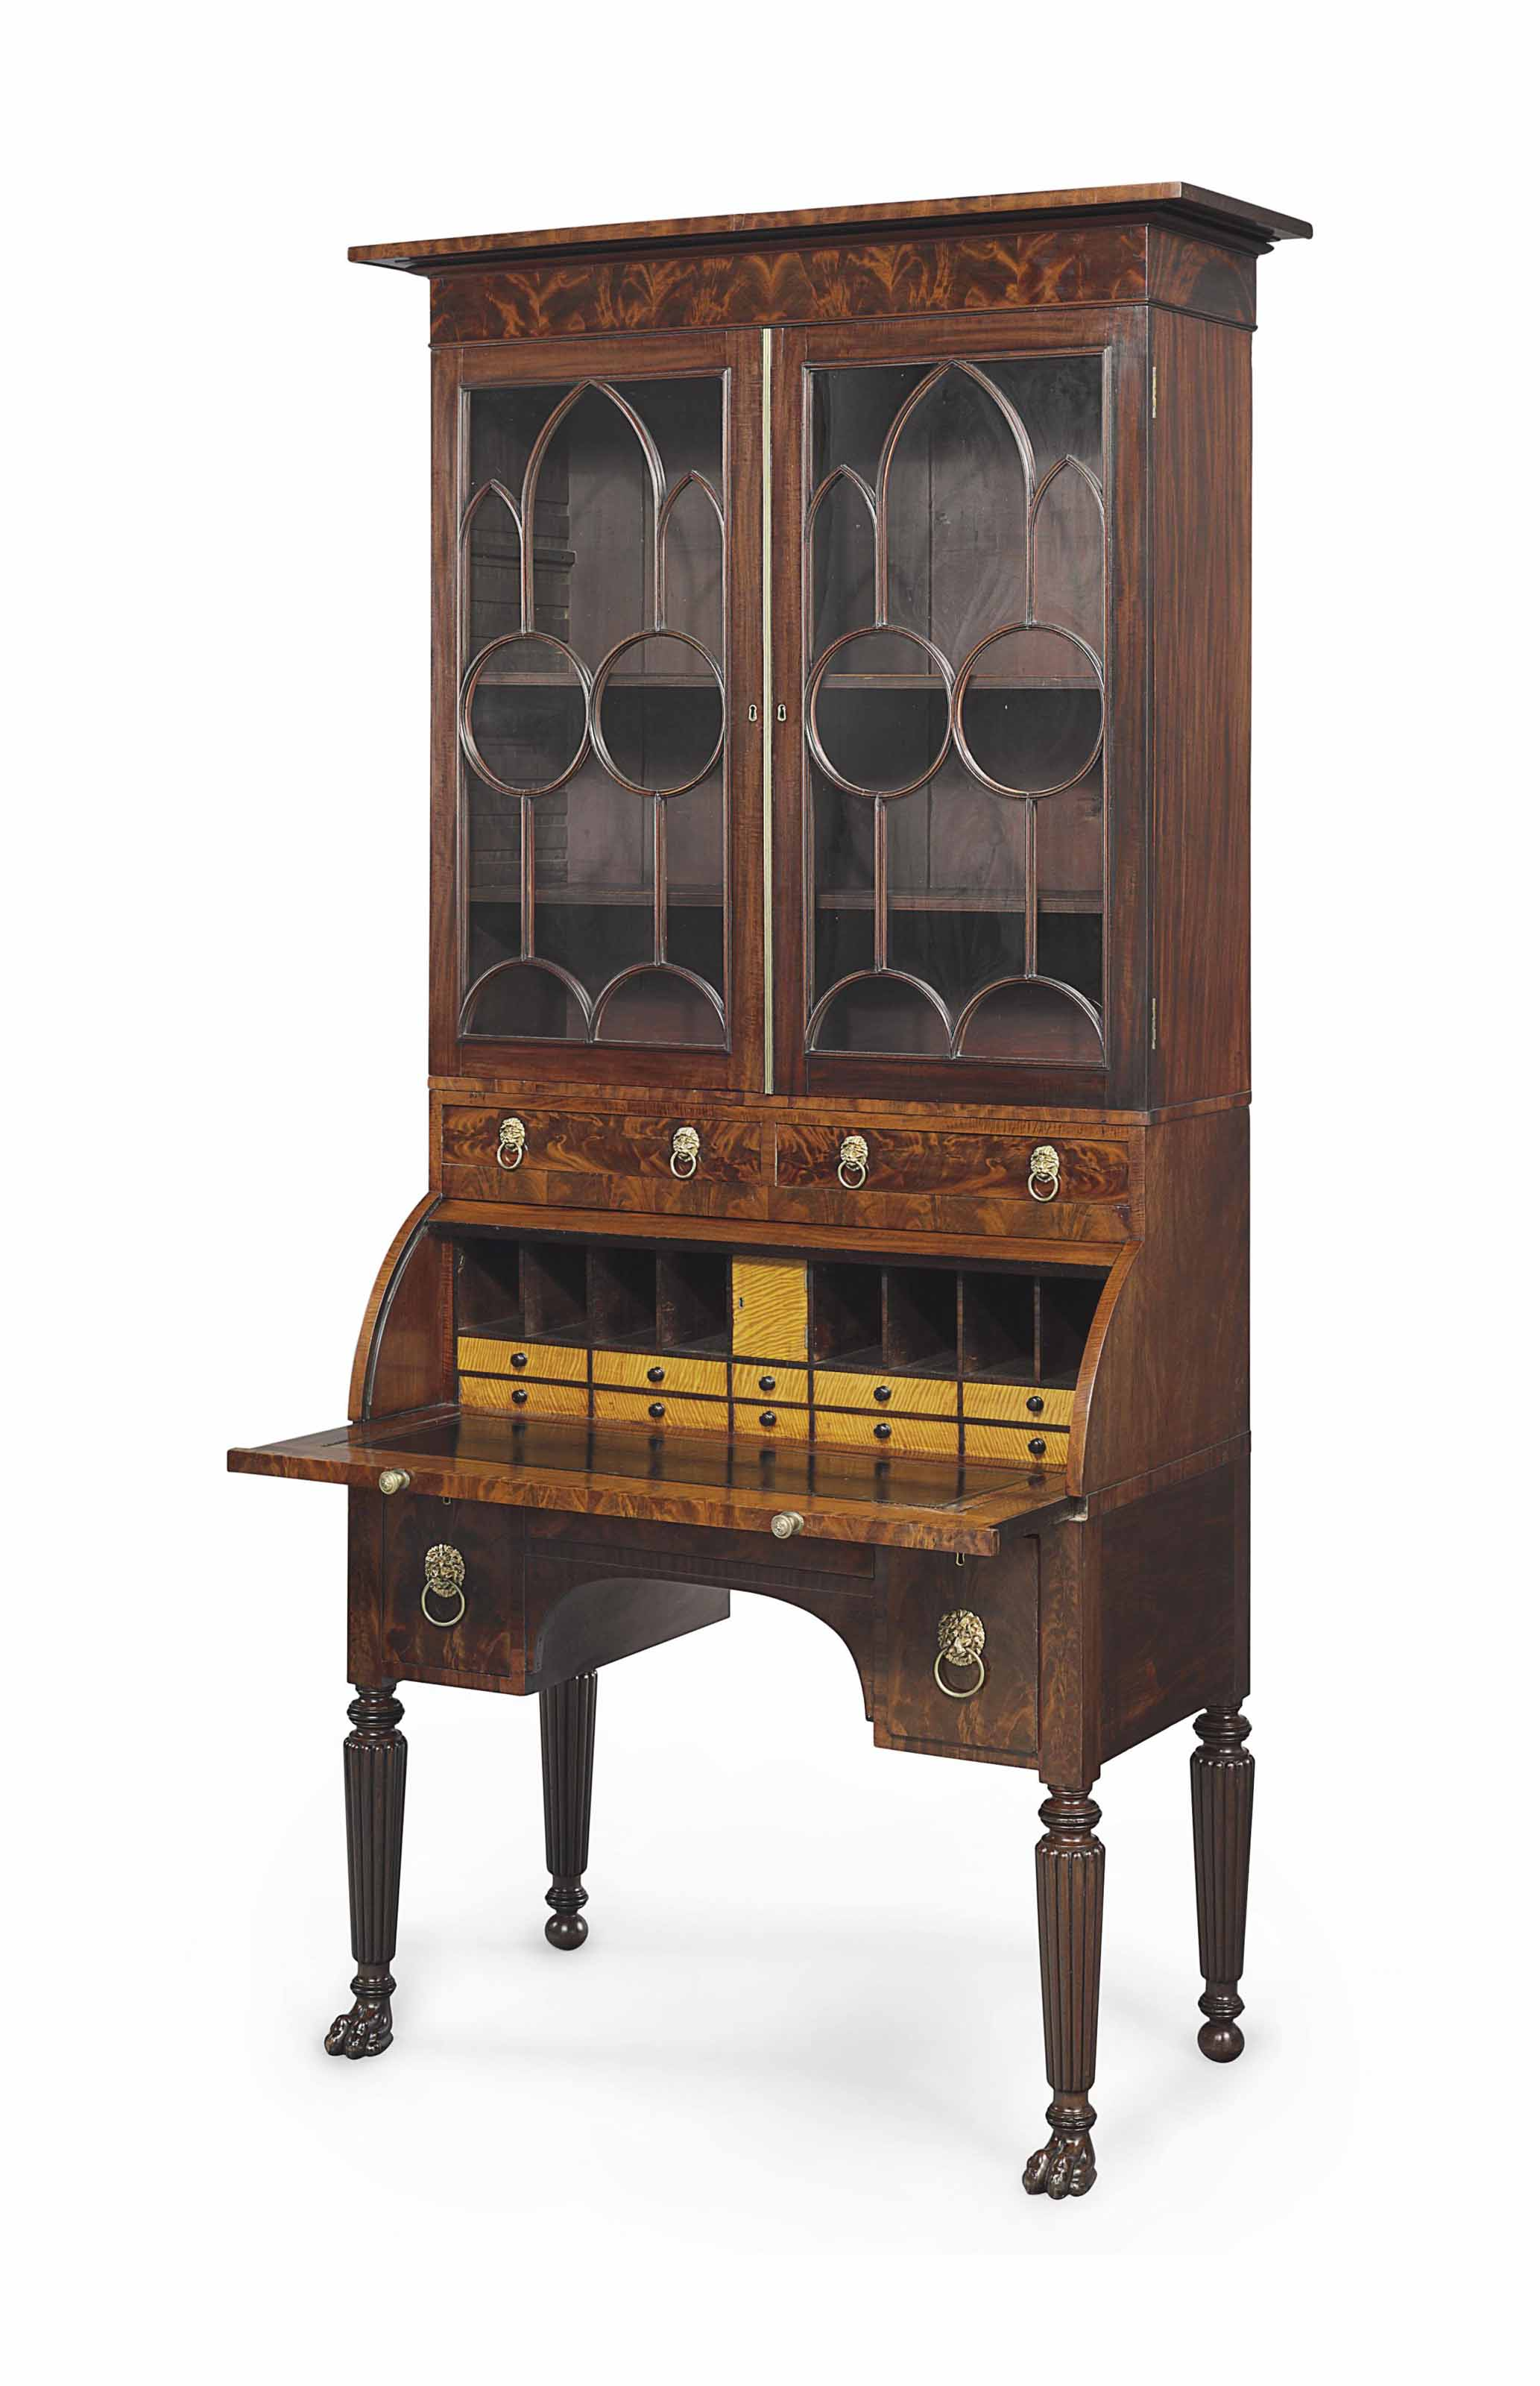 A CLASSICAL CARVED AND FIGURED MAHOGANY CYLINDER-FRONT DESK-AND-BOOKCASE